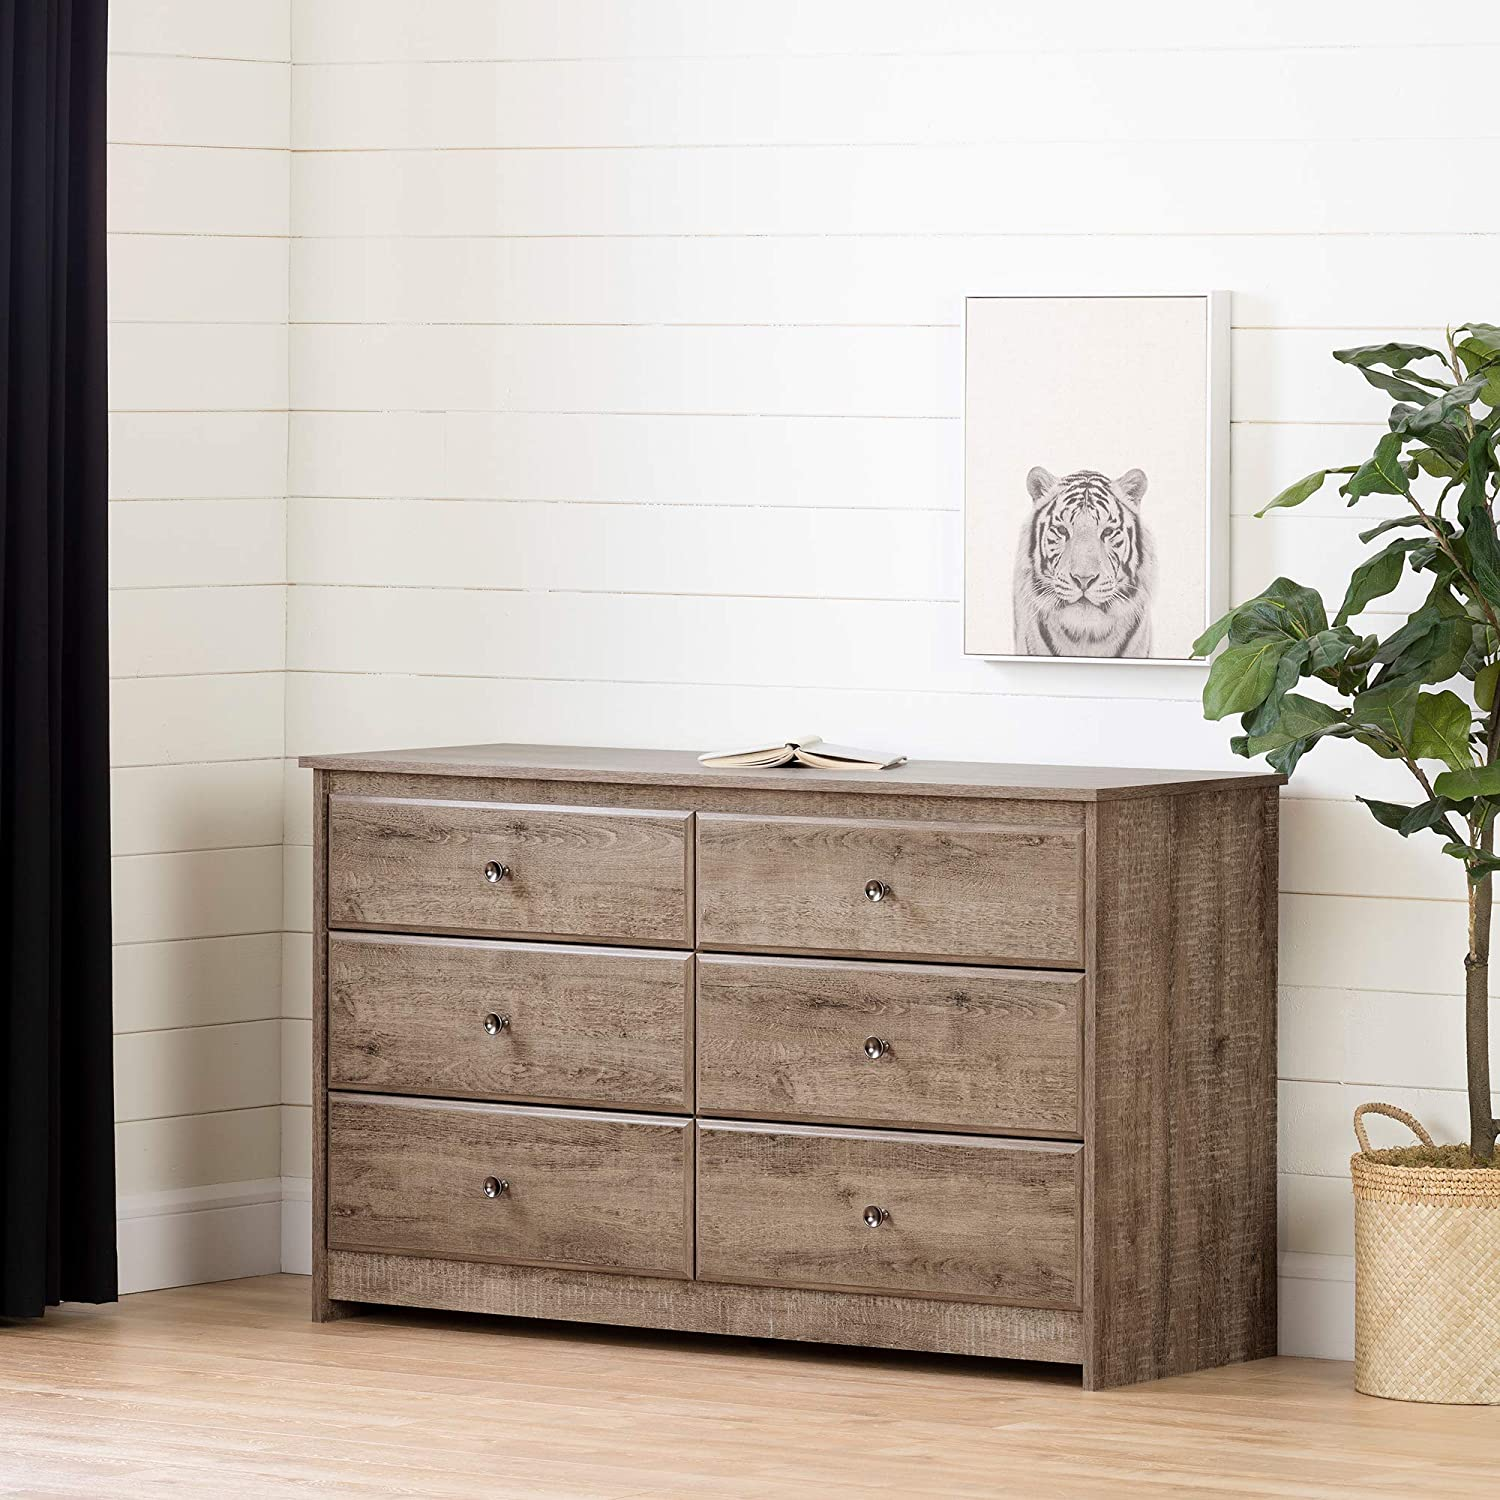 South Shore Furniture Tassio 6-Drawer Double Dresser-Weathered Oak